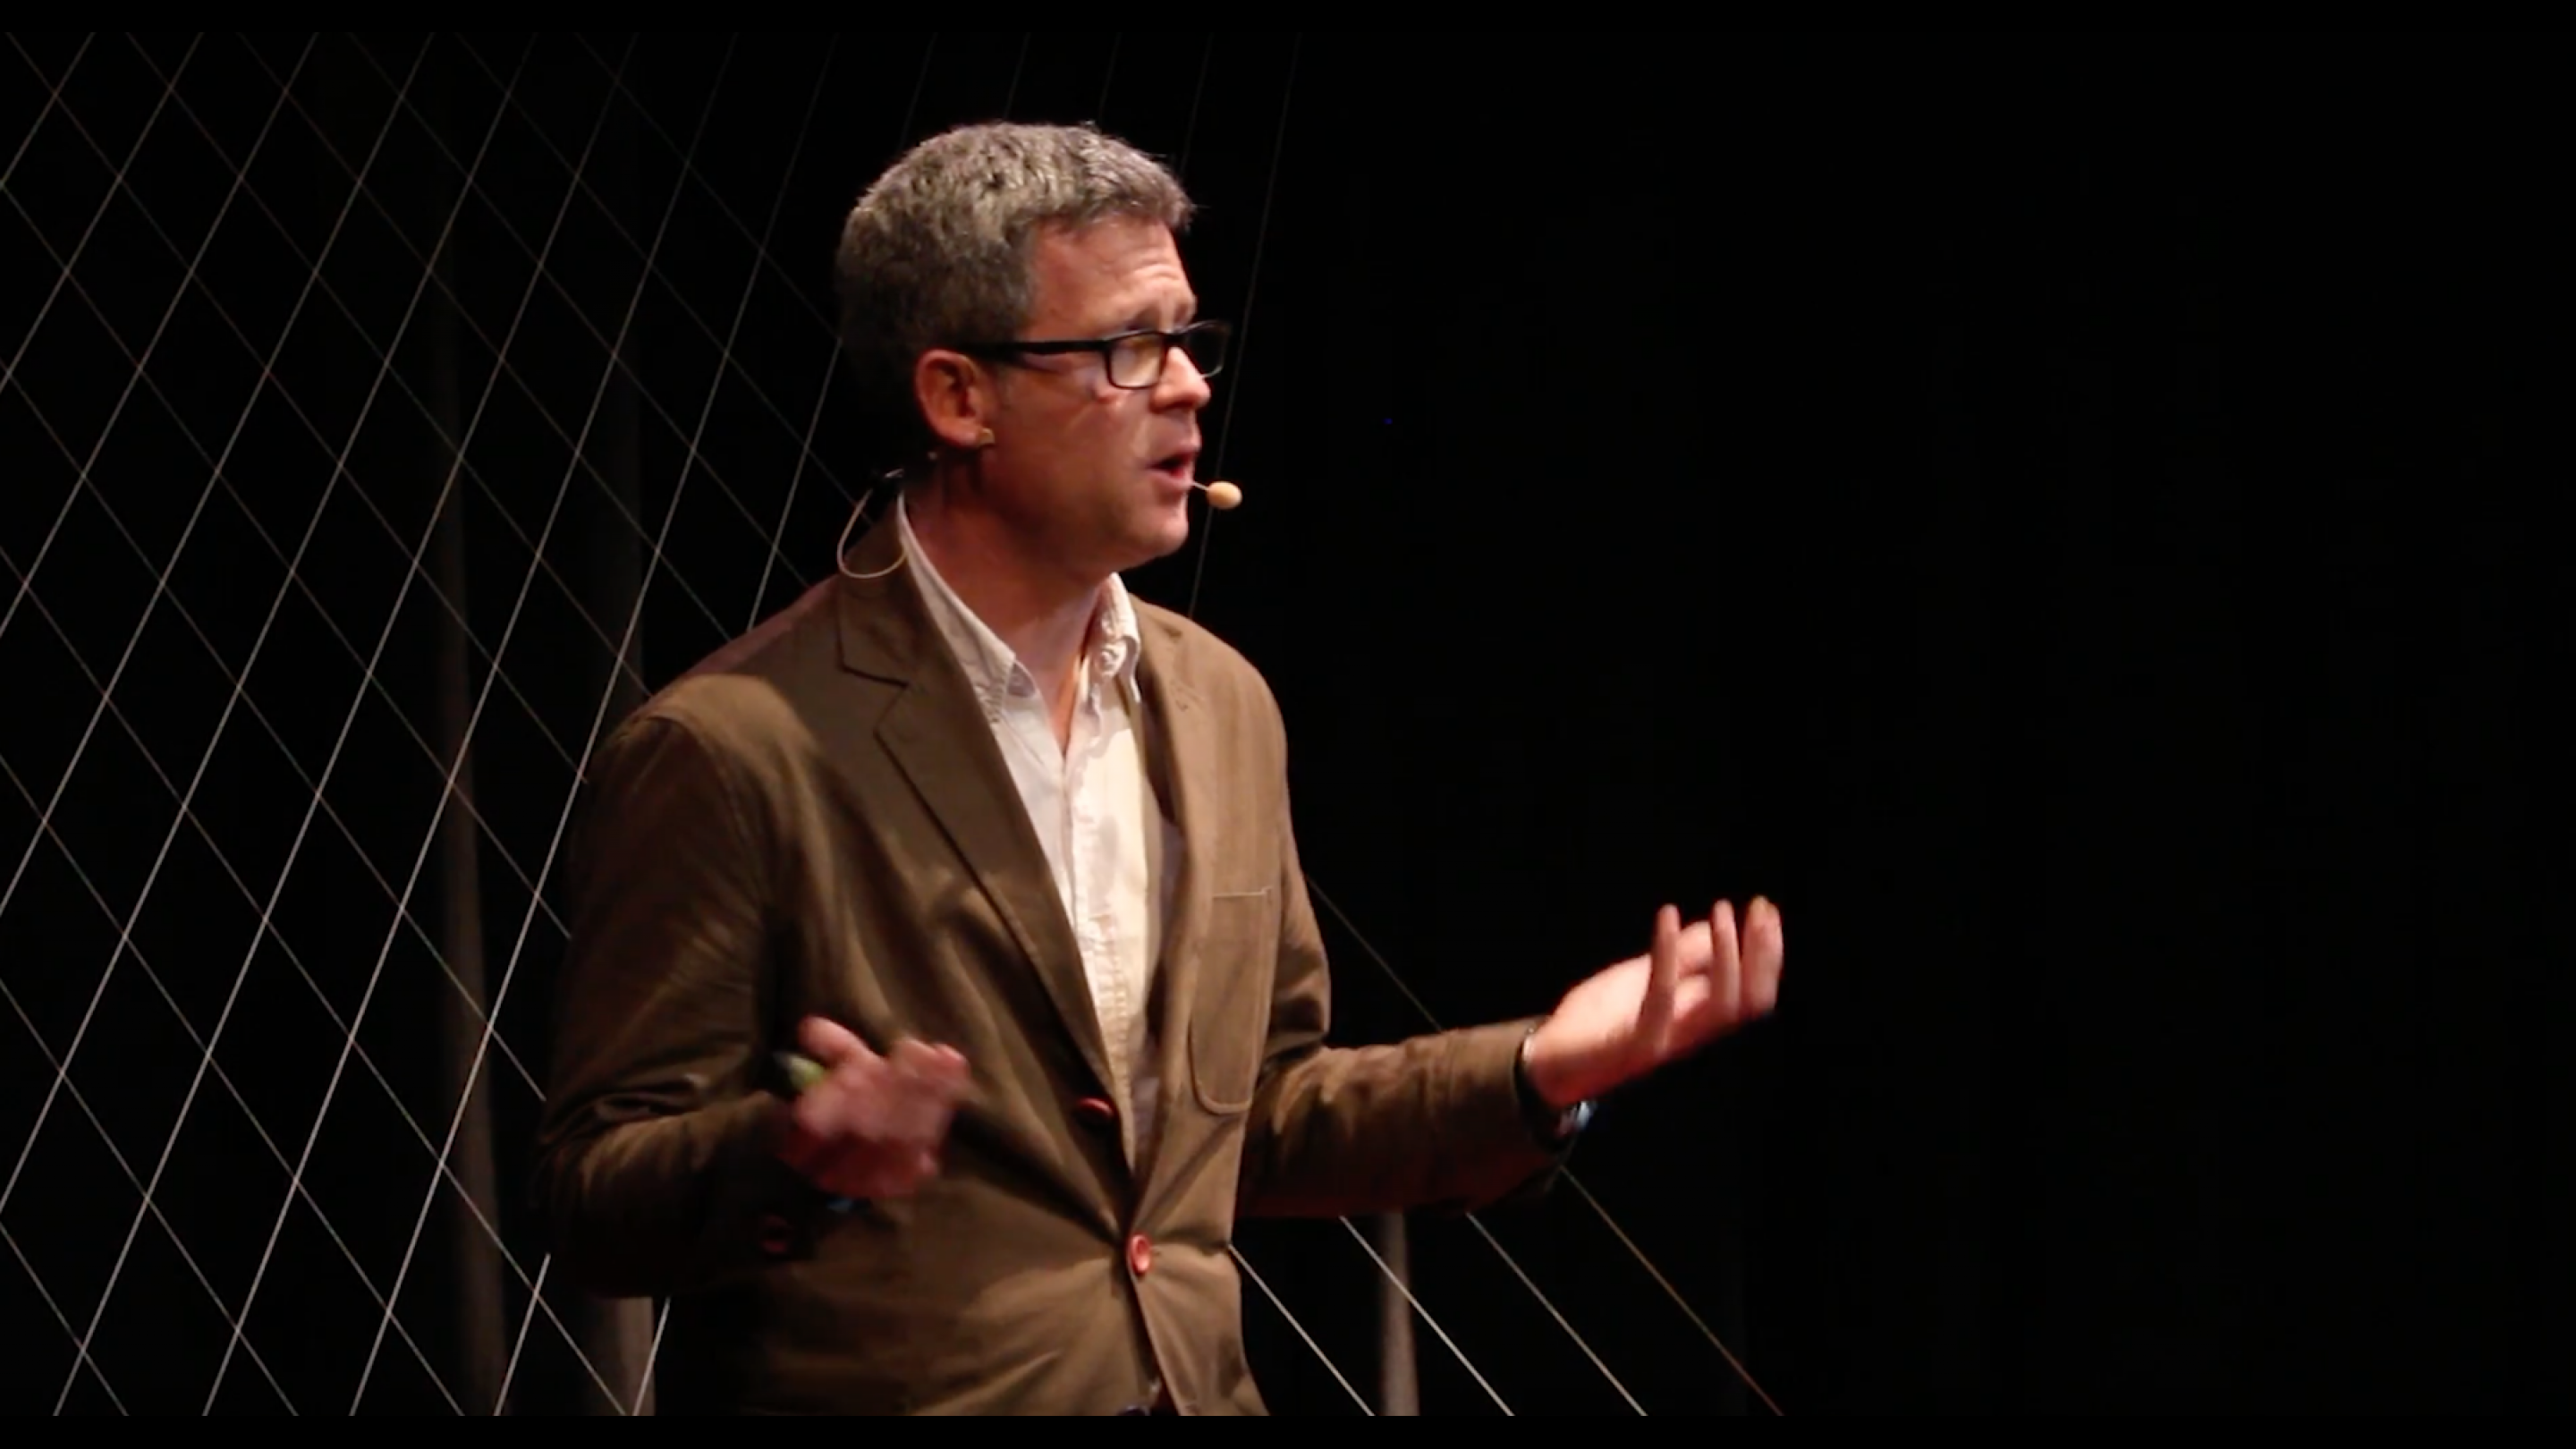 Still from Ed Ikin's TEDx talk